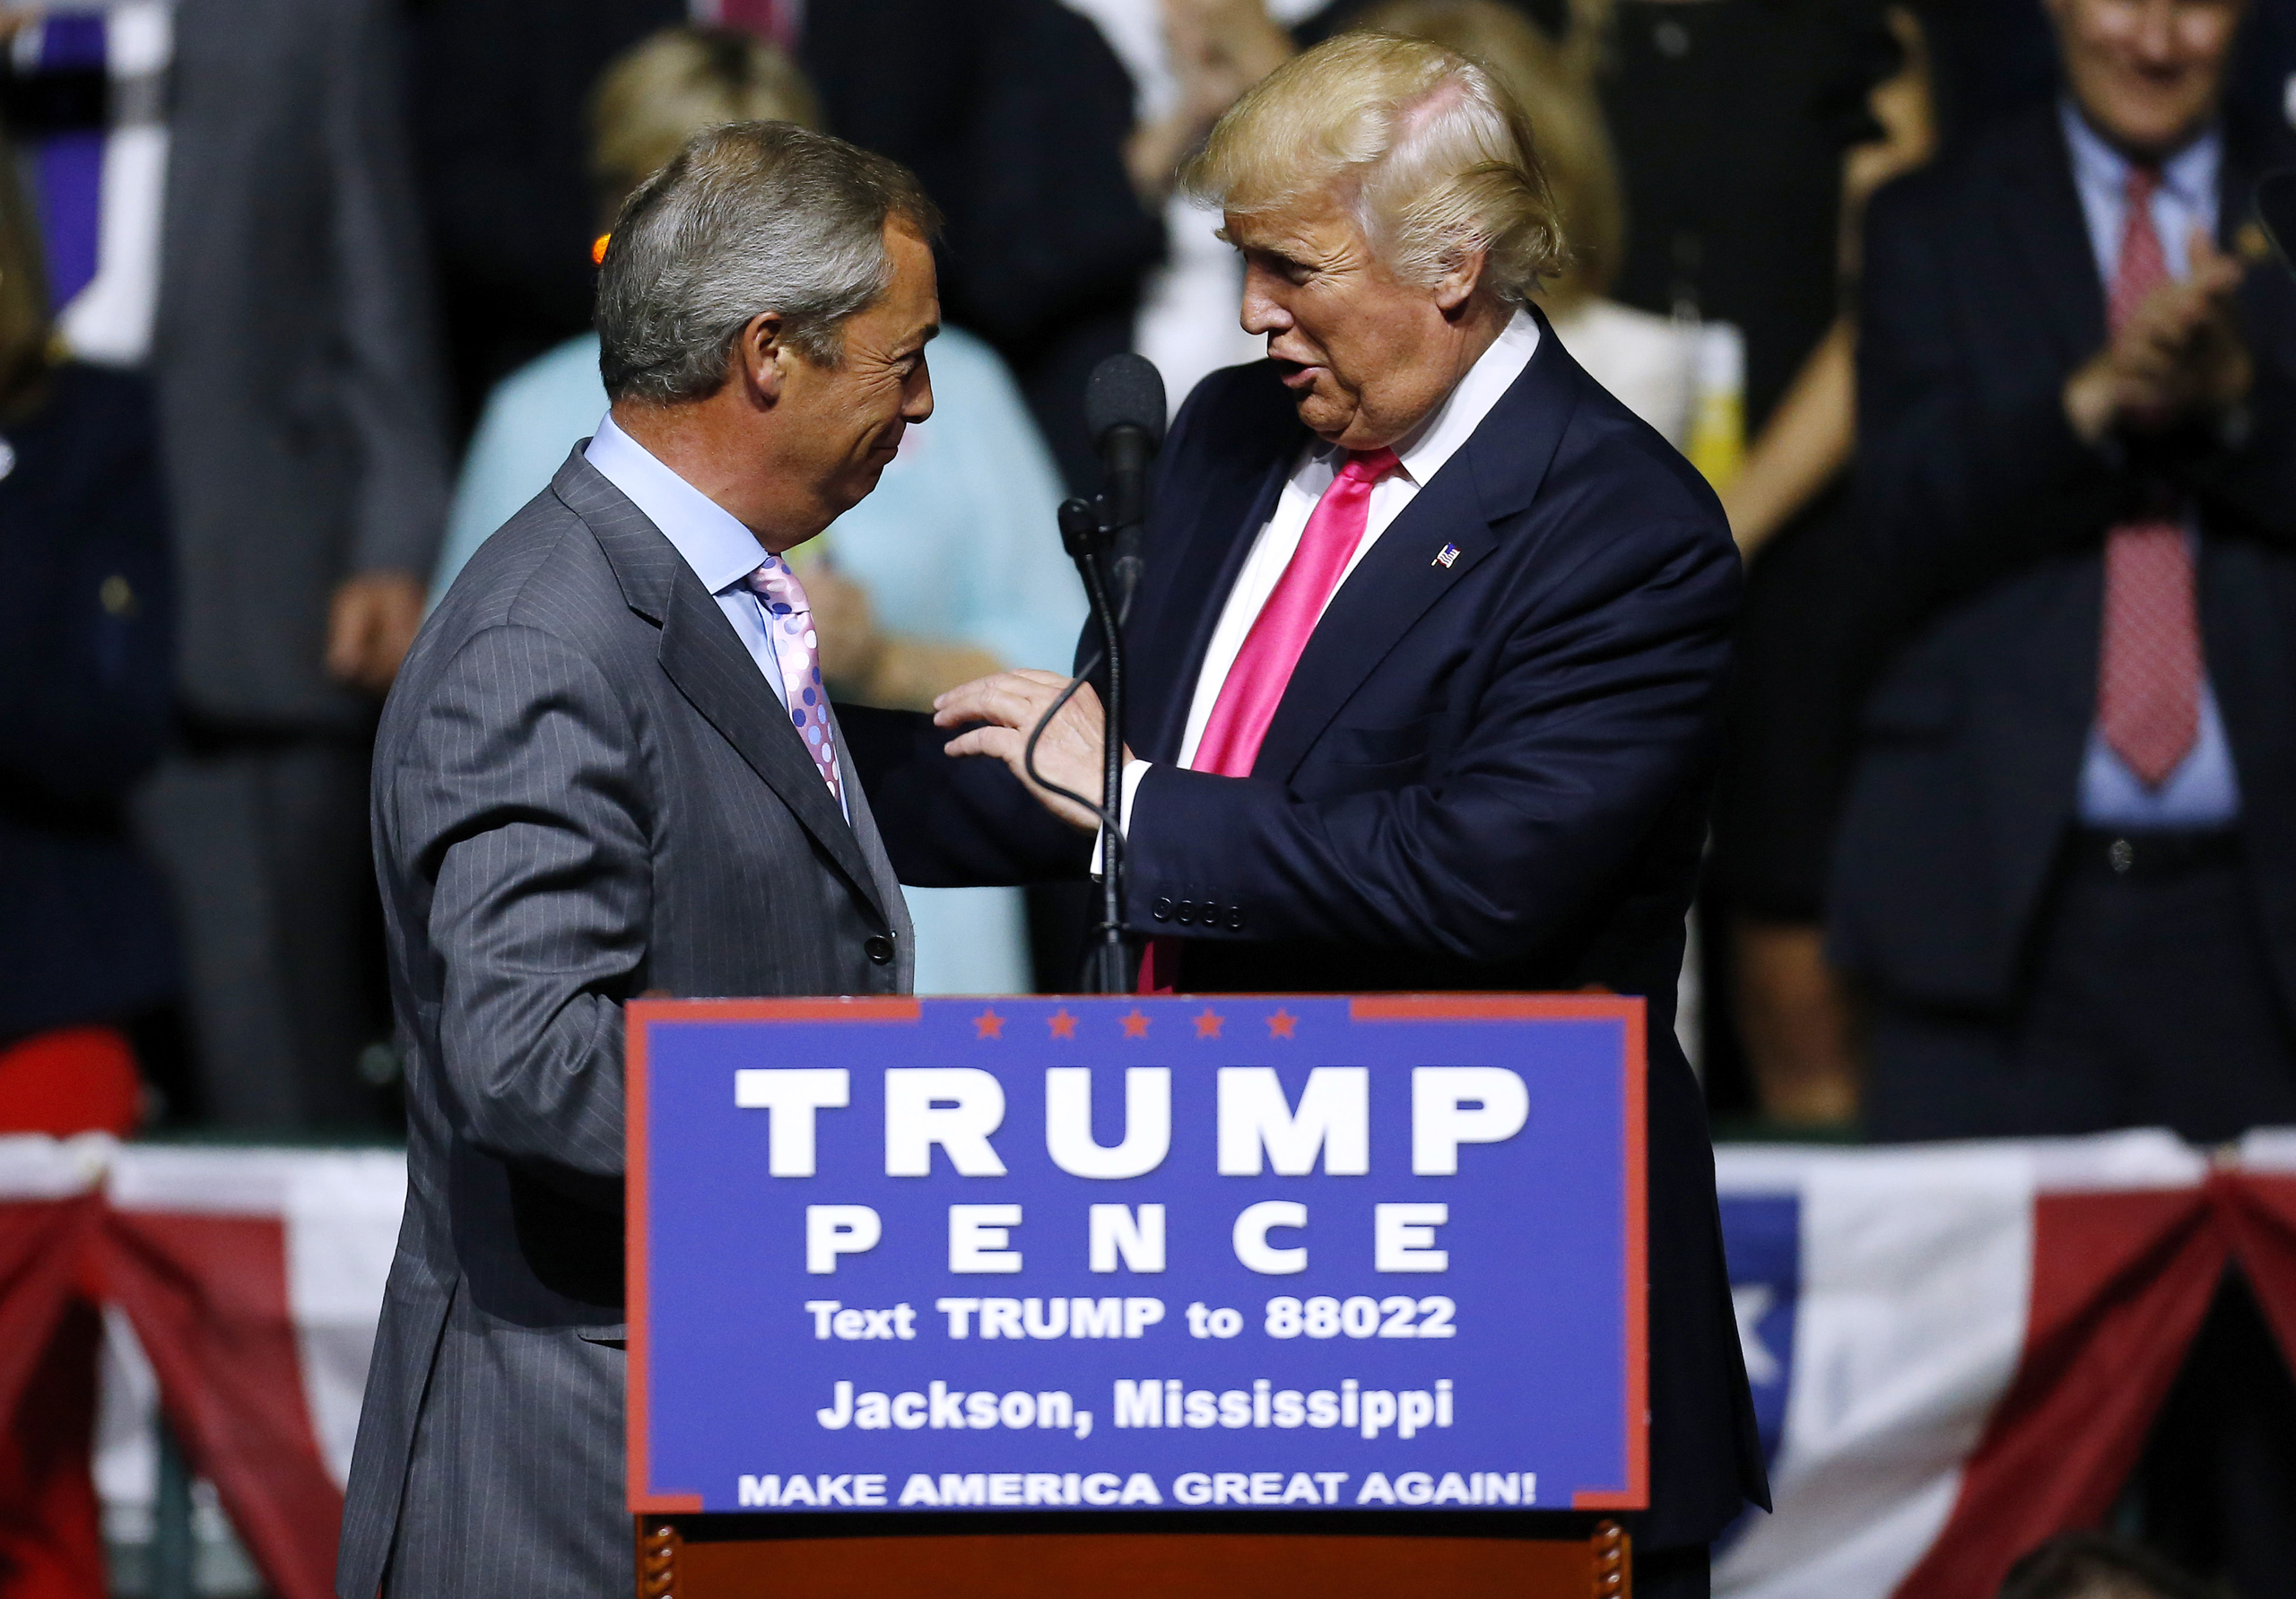 Donald Trump greets United Kingdom Independence Party leader Nigel Farage during a campaign rally at the Mississippi Coliseum on Aug. 24, 2016.